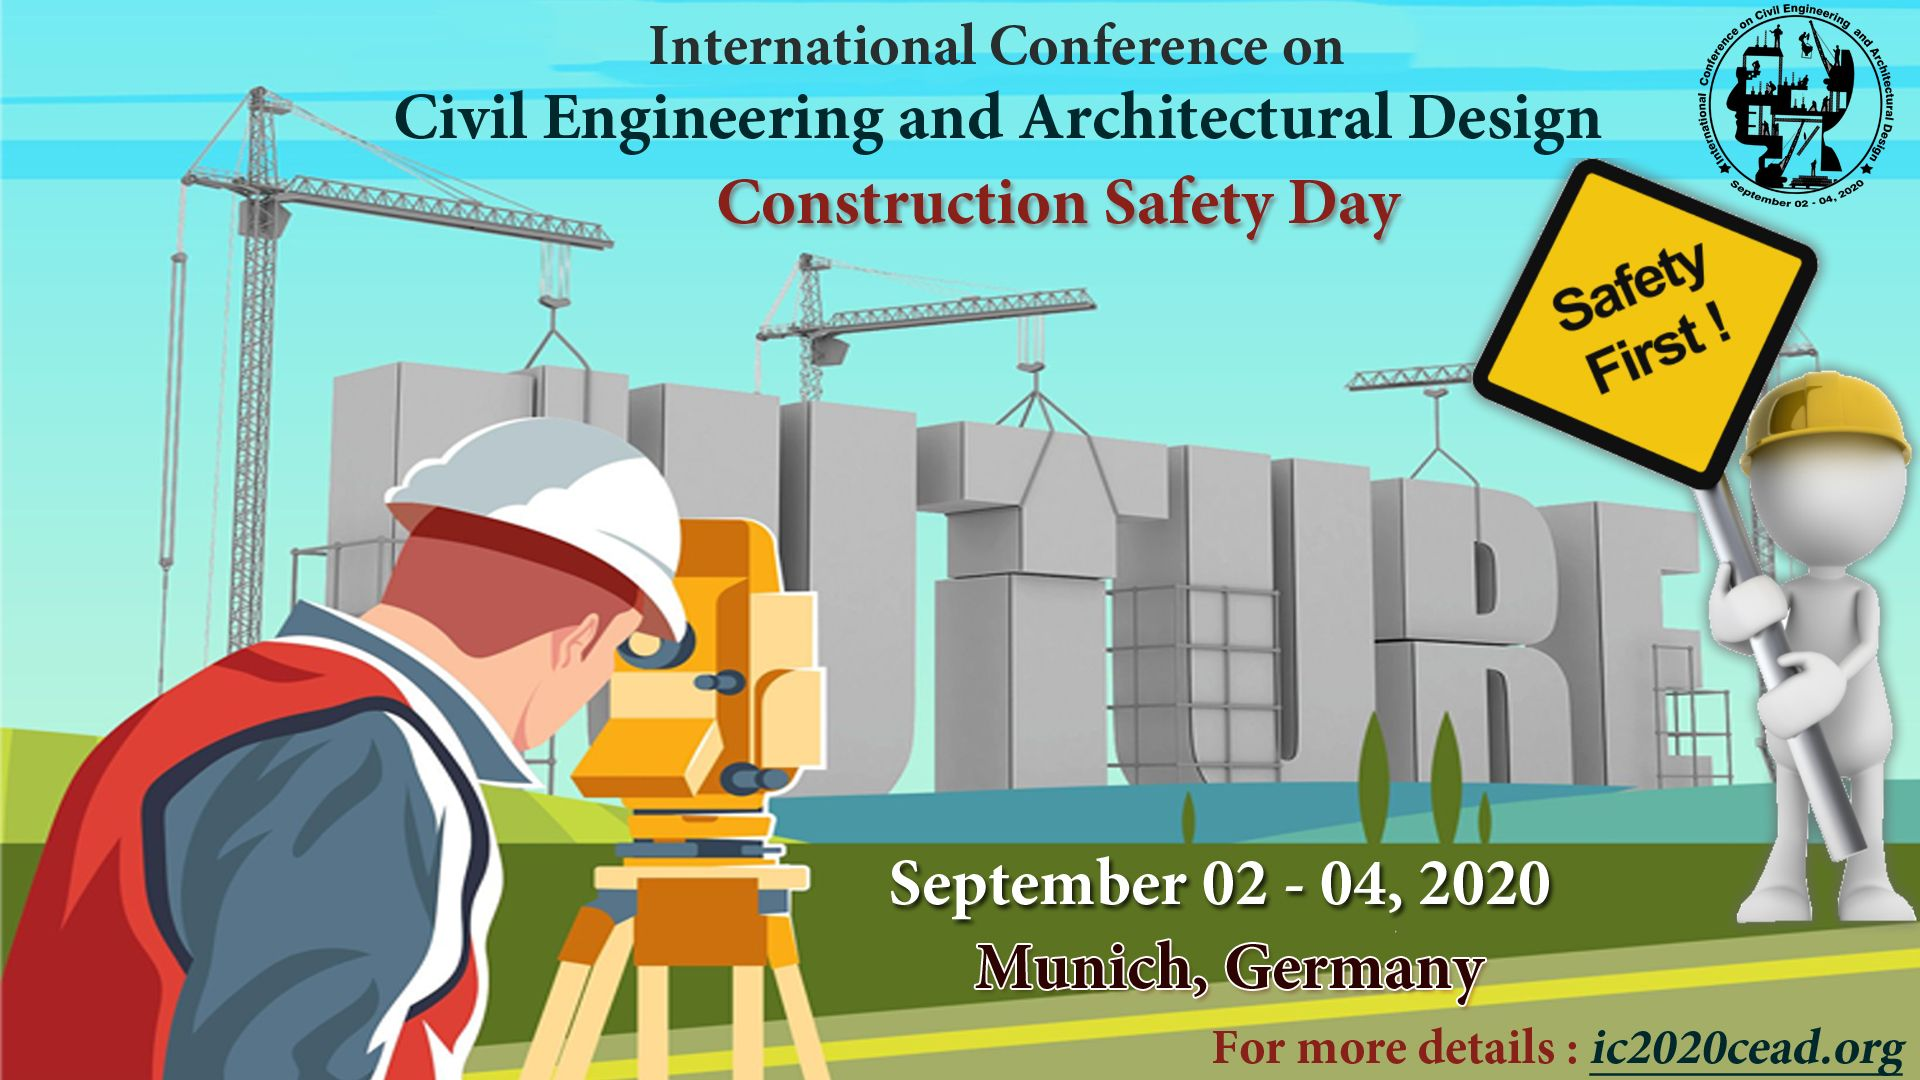 International Conference on Civil Engineering and